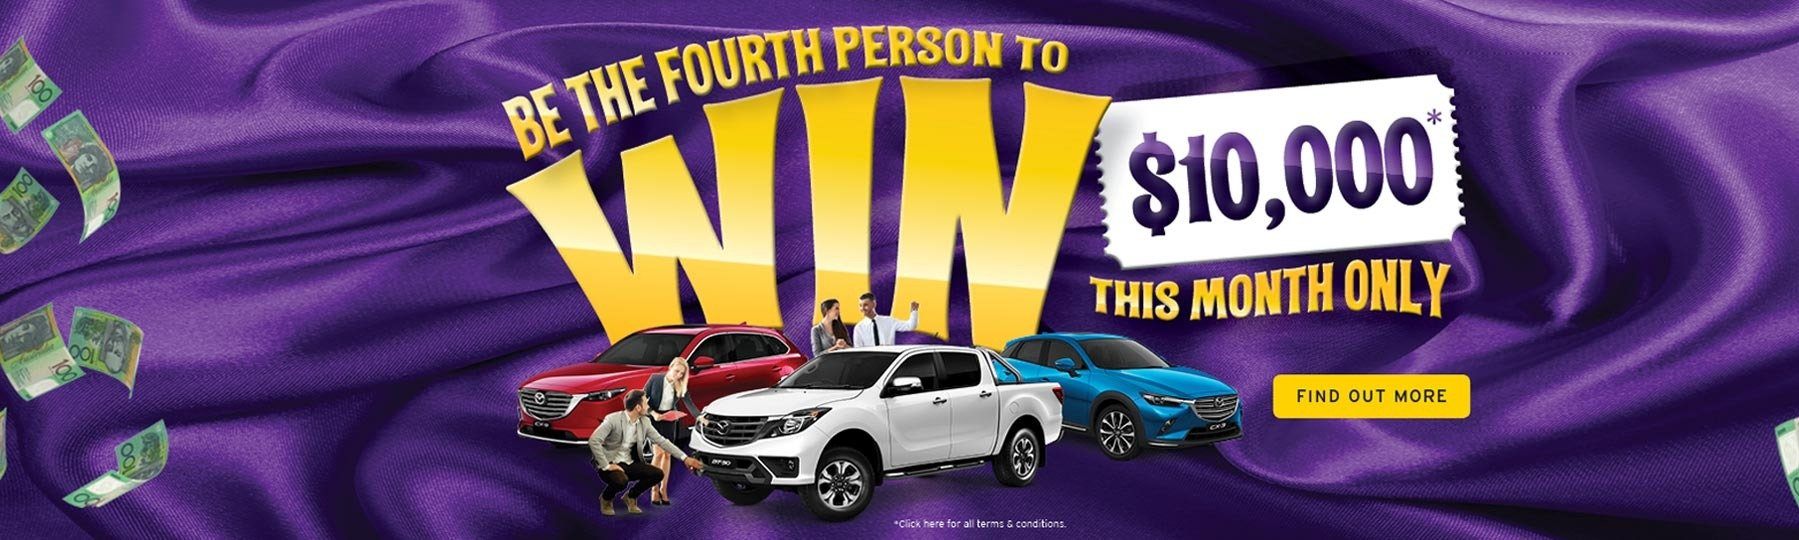 Rockdale Mazda - Your Chance to Win